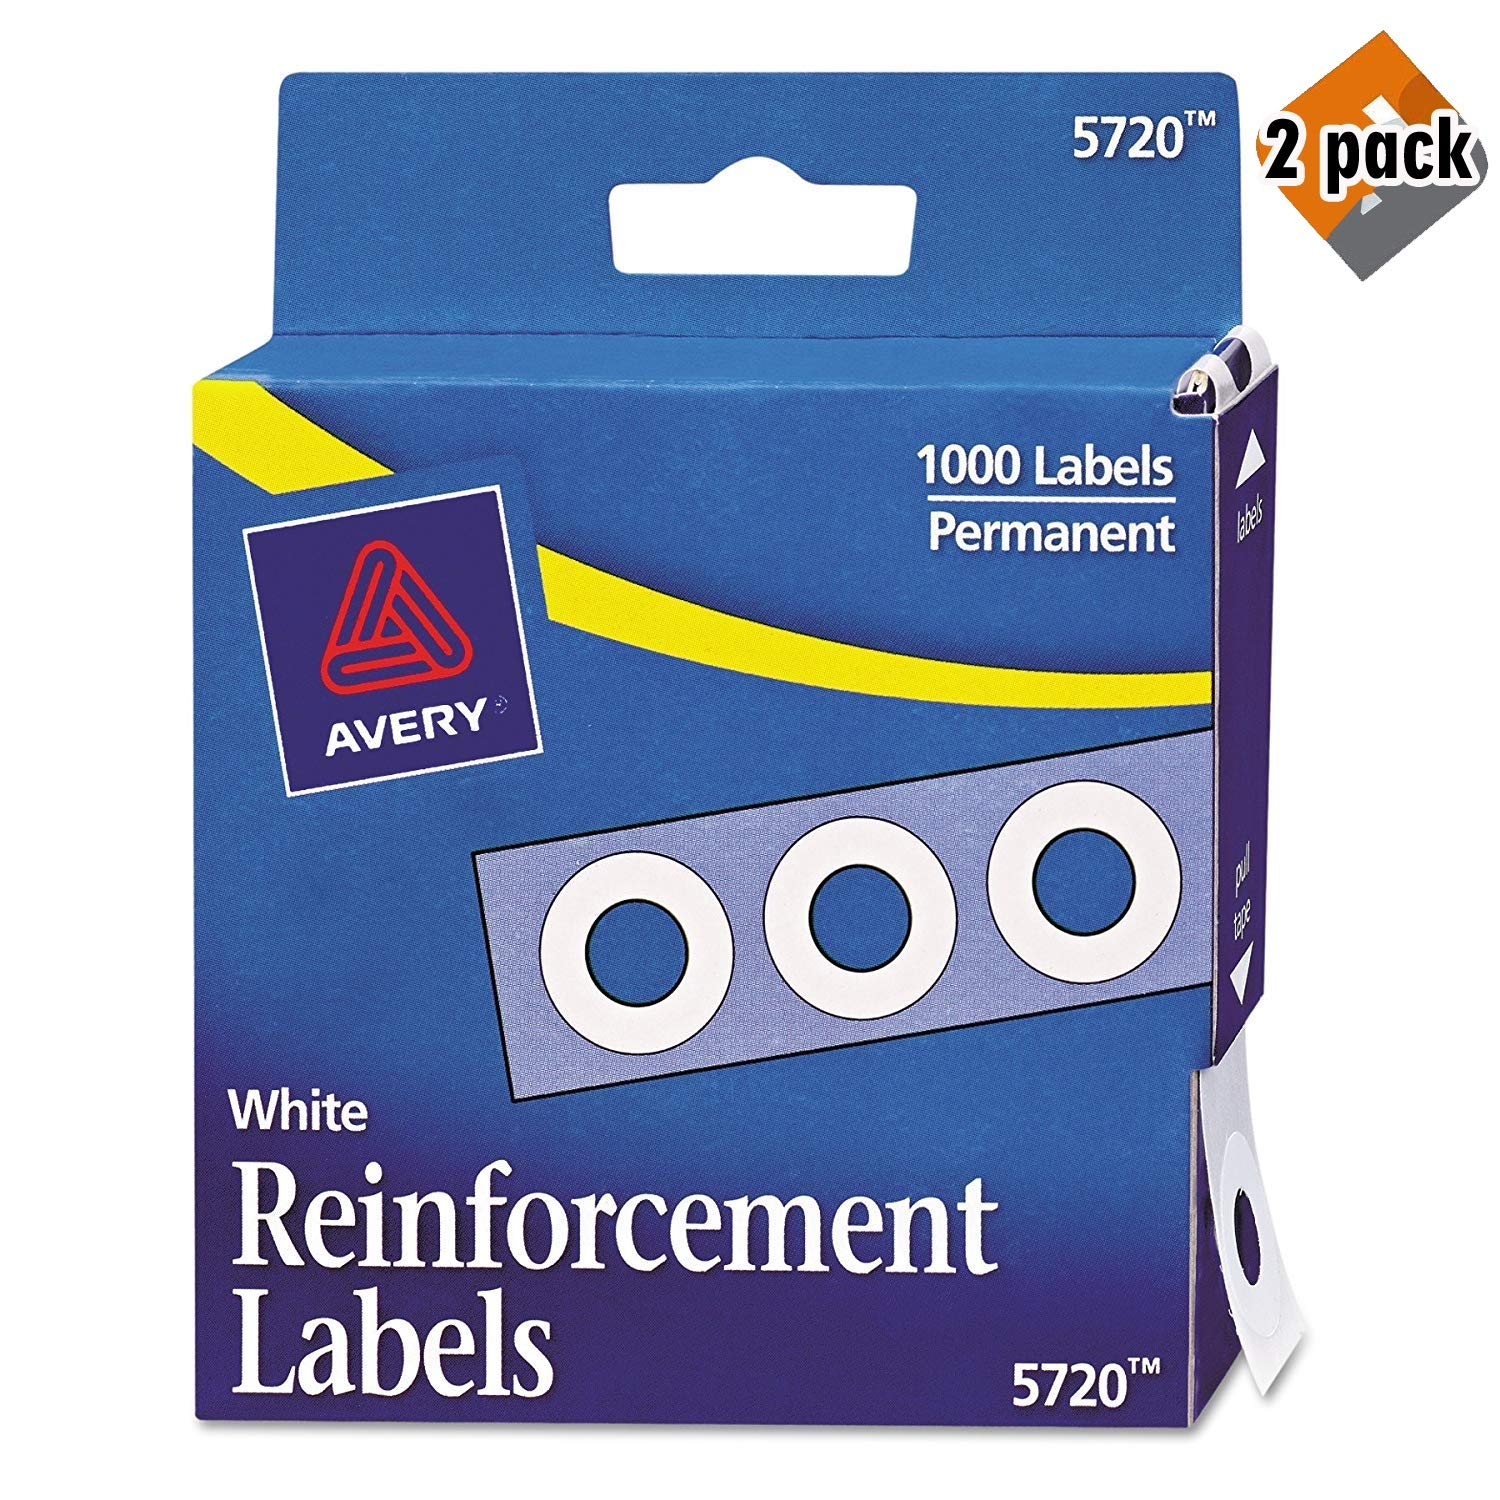 Avery Hole Reinforcements, White, 1000/Pack, PK - AVE05720, 2 Pack by AVERY